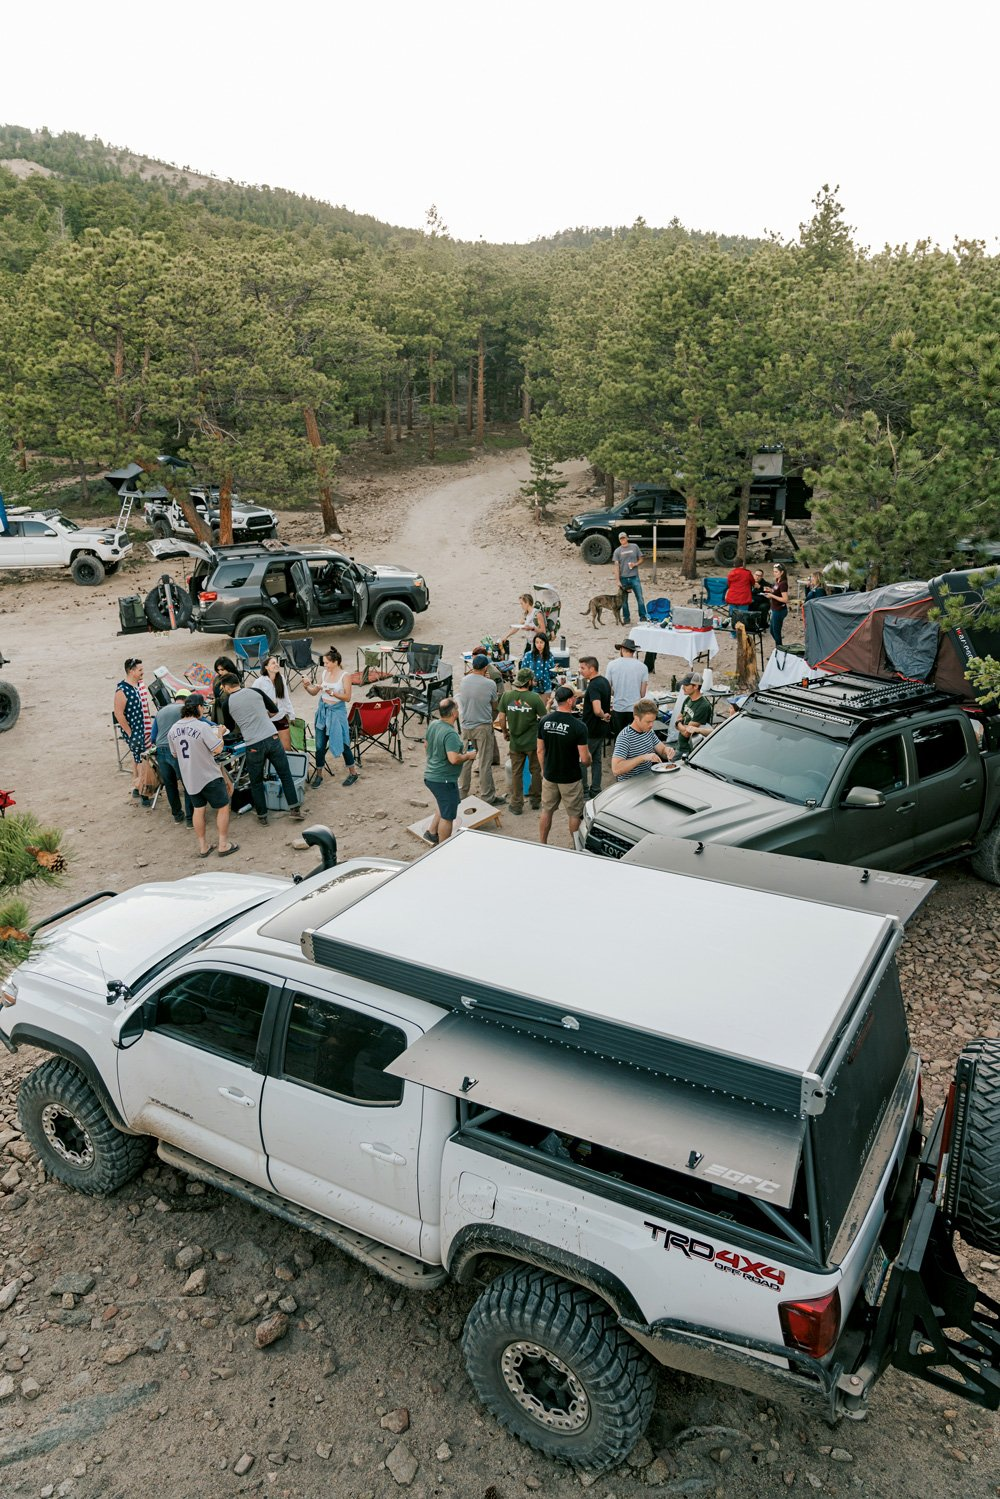 Campers gather to enjoy a delicious meal and make new friends